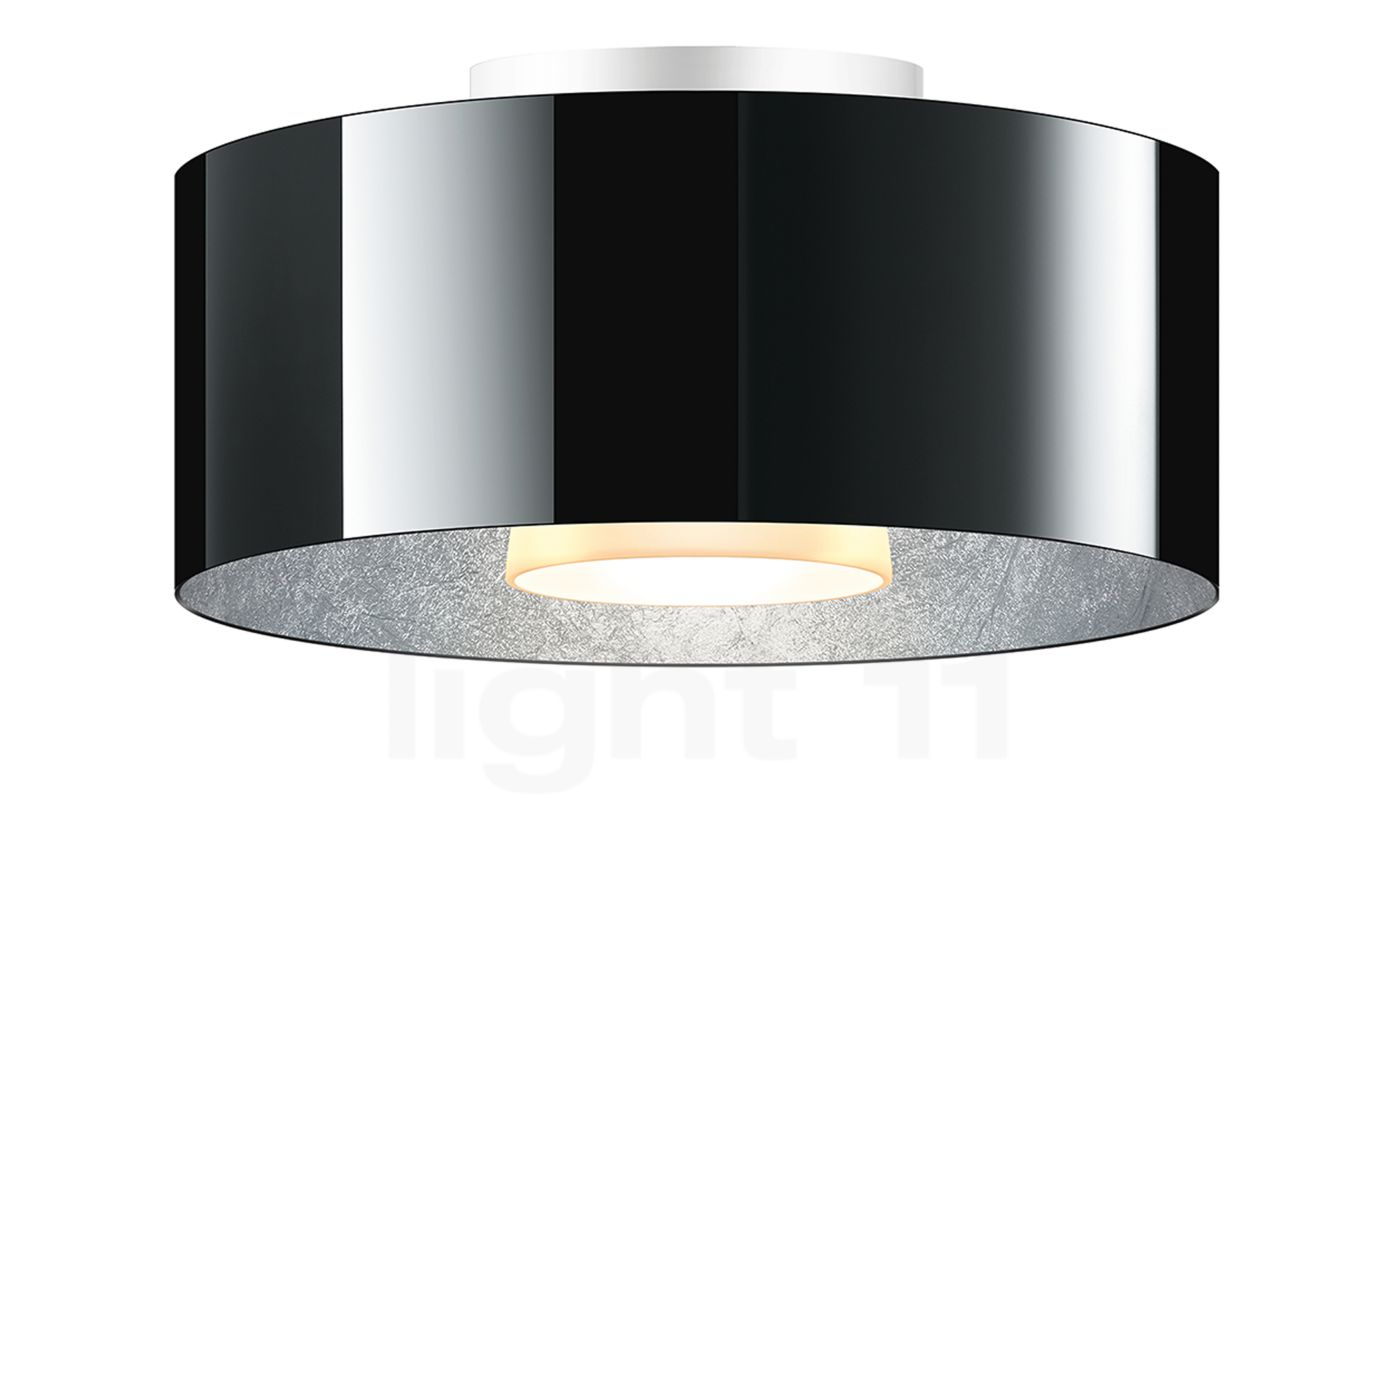 Buy Bruck Cantara Glas 300 Down Ceiling Light LED dim2warm at